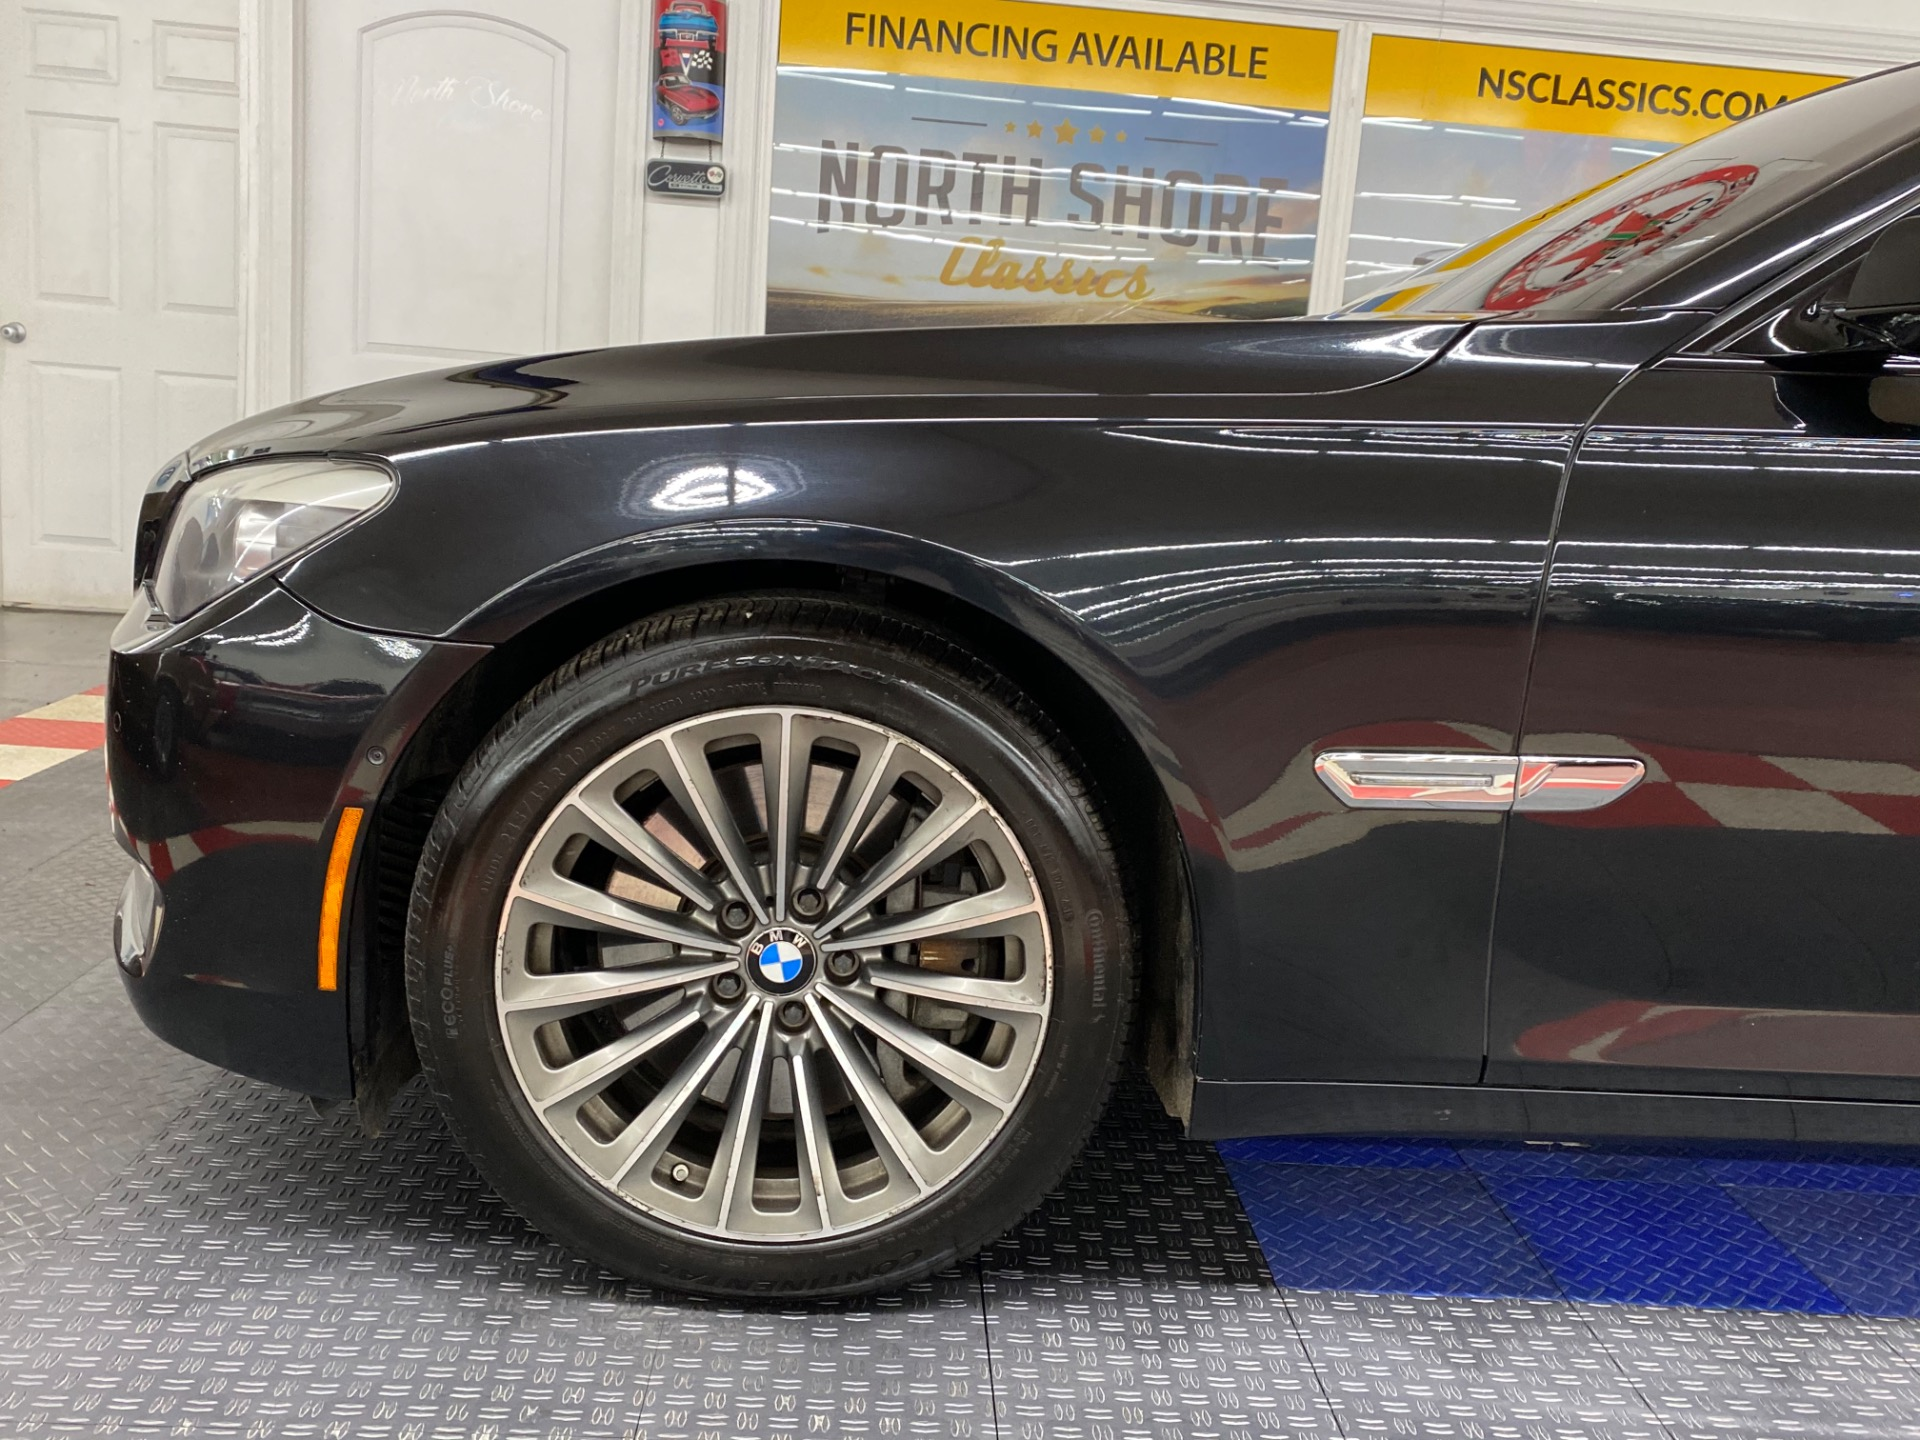 Used 2009 BMW 750 Li - RECENT MAJOR SERVICE COMPLETED - LOADED WITH OPTIONS - SEE VIDEO | Mundelein, IL